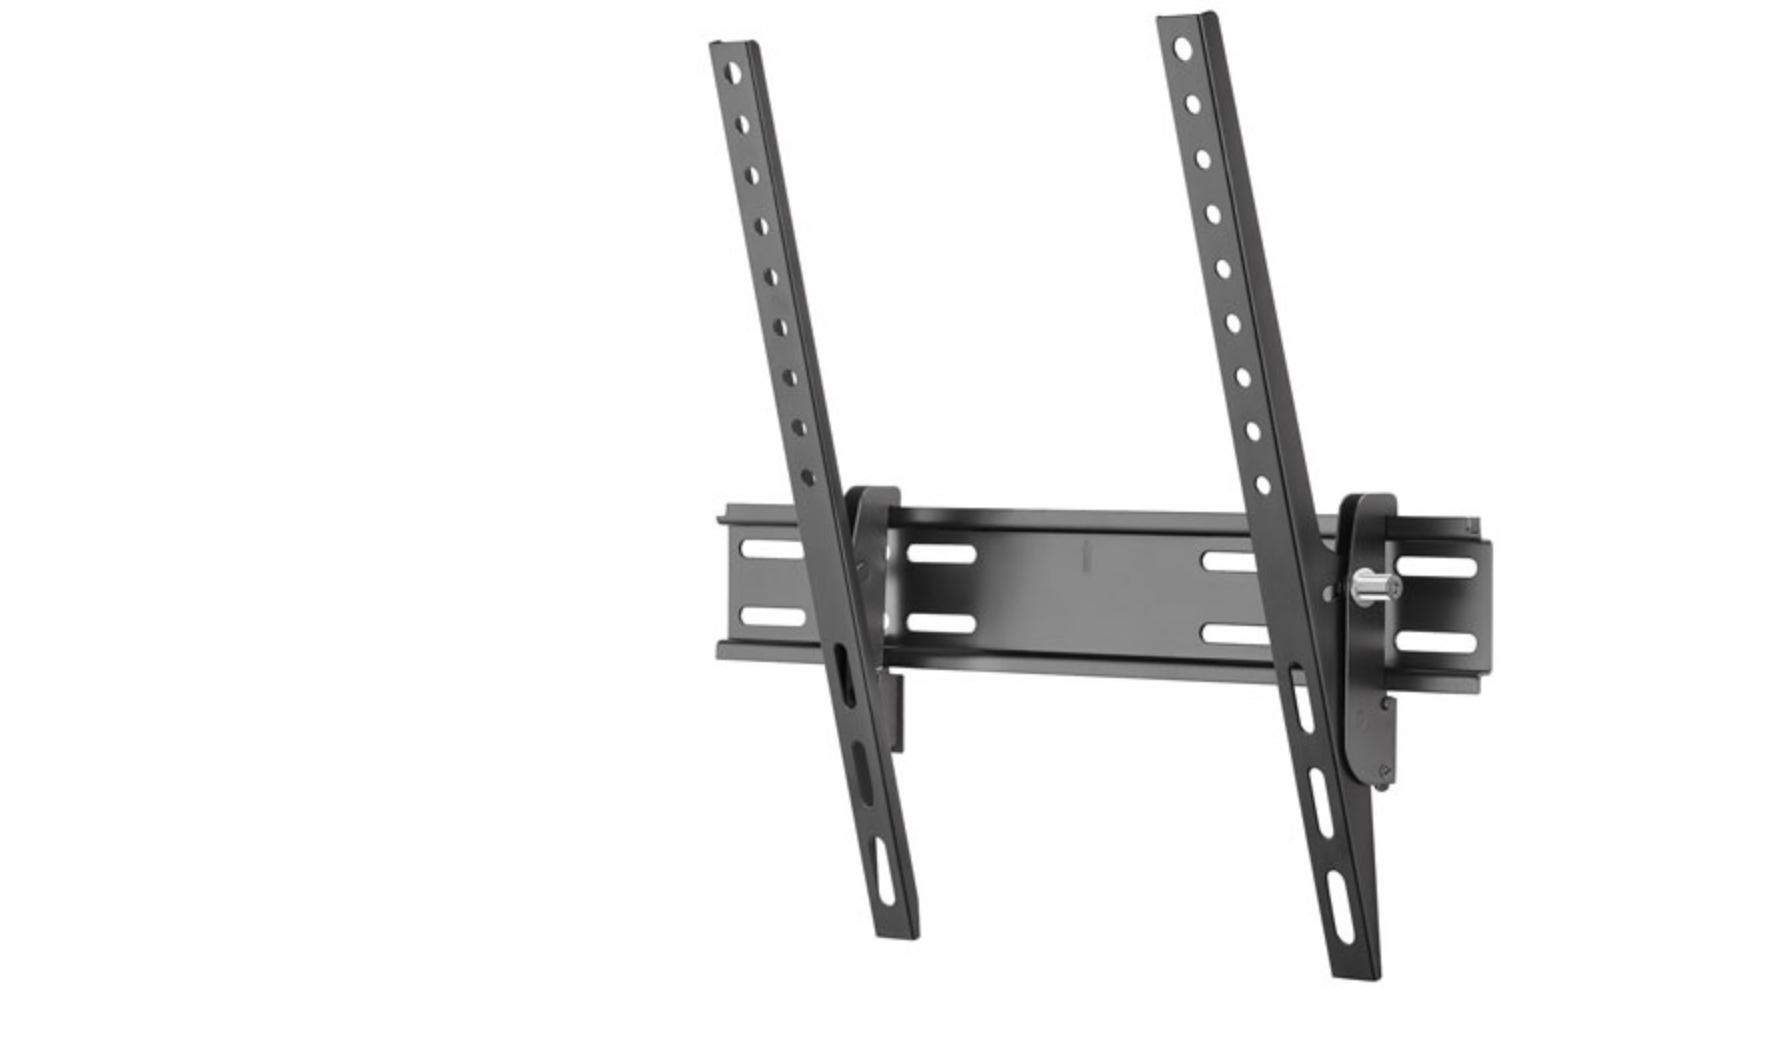 tilting wall mount, safety, home, TV, moving day